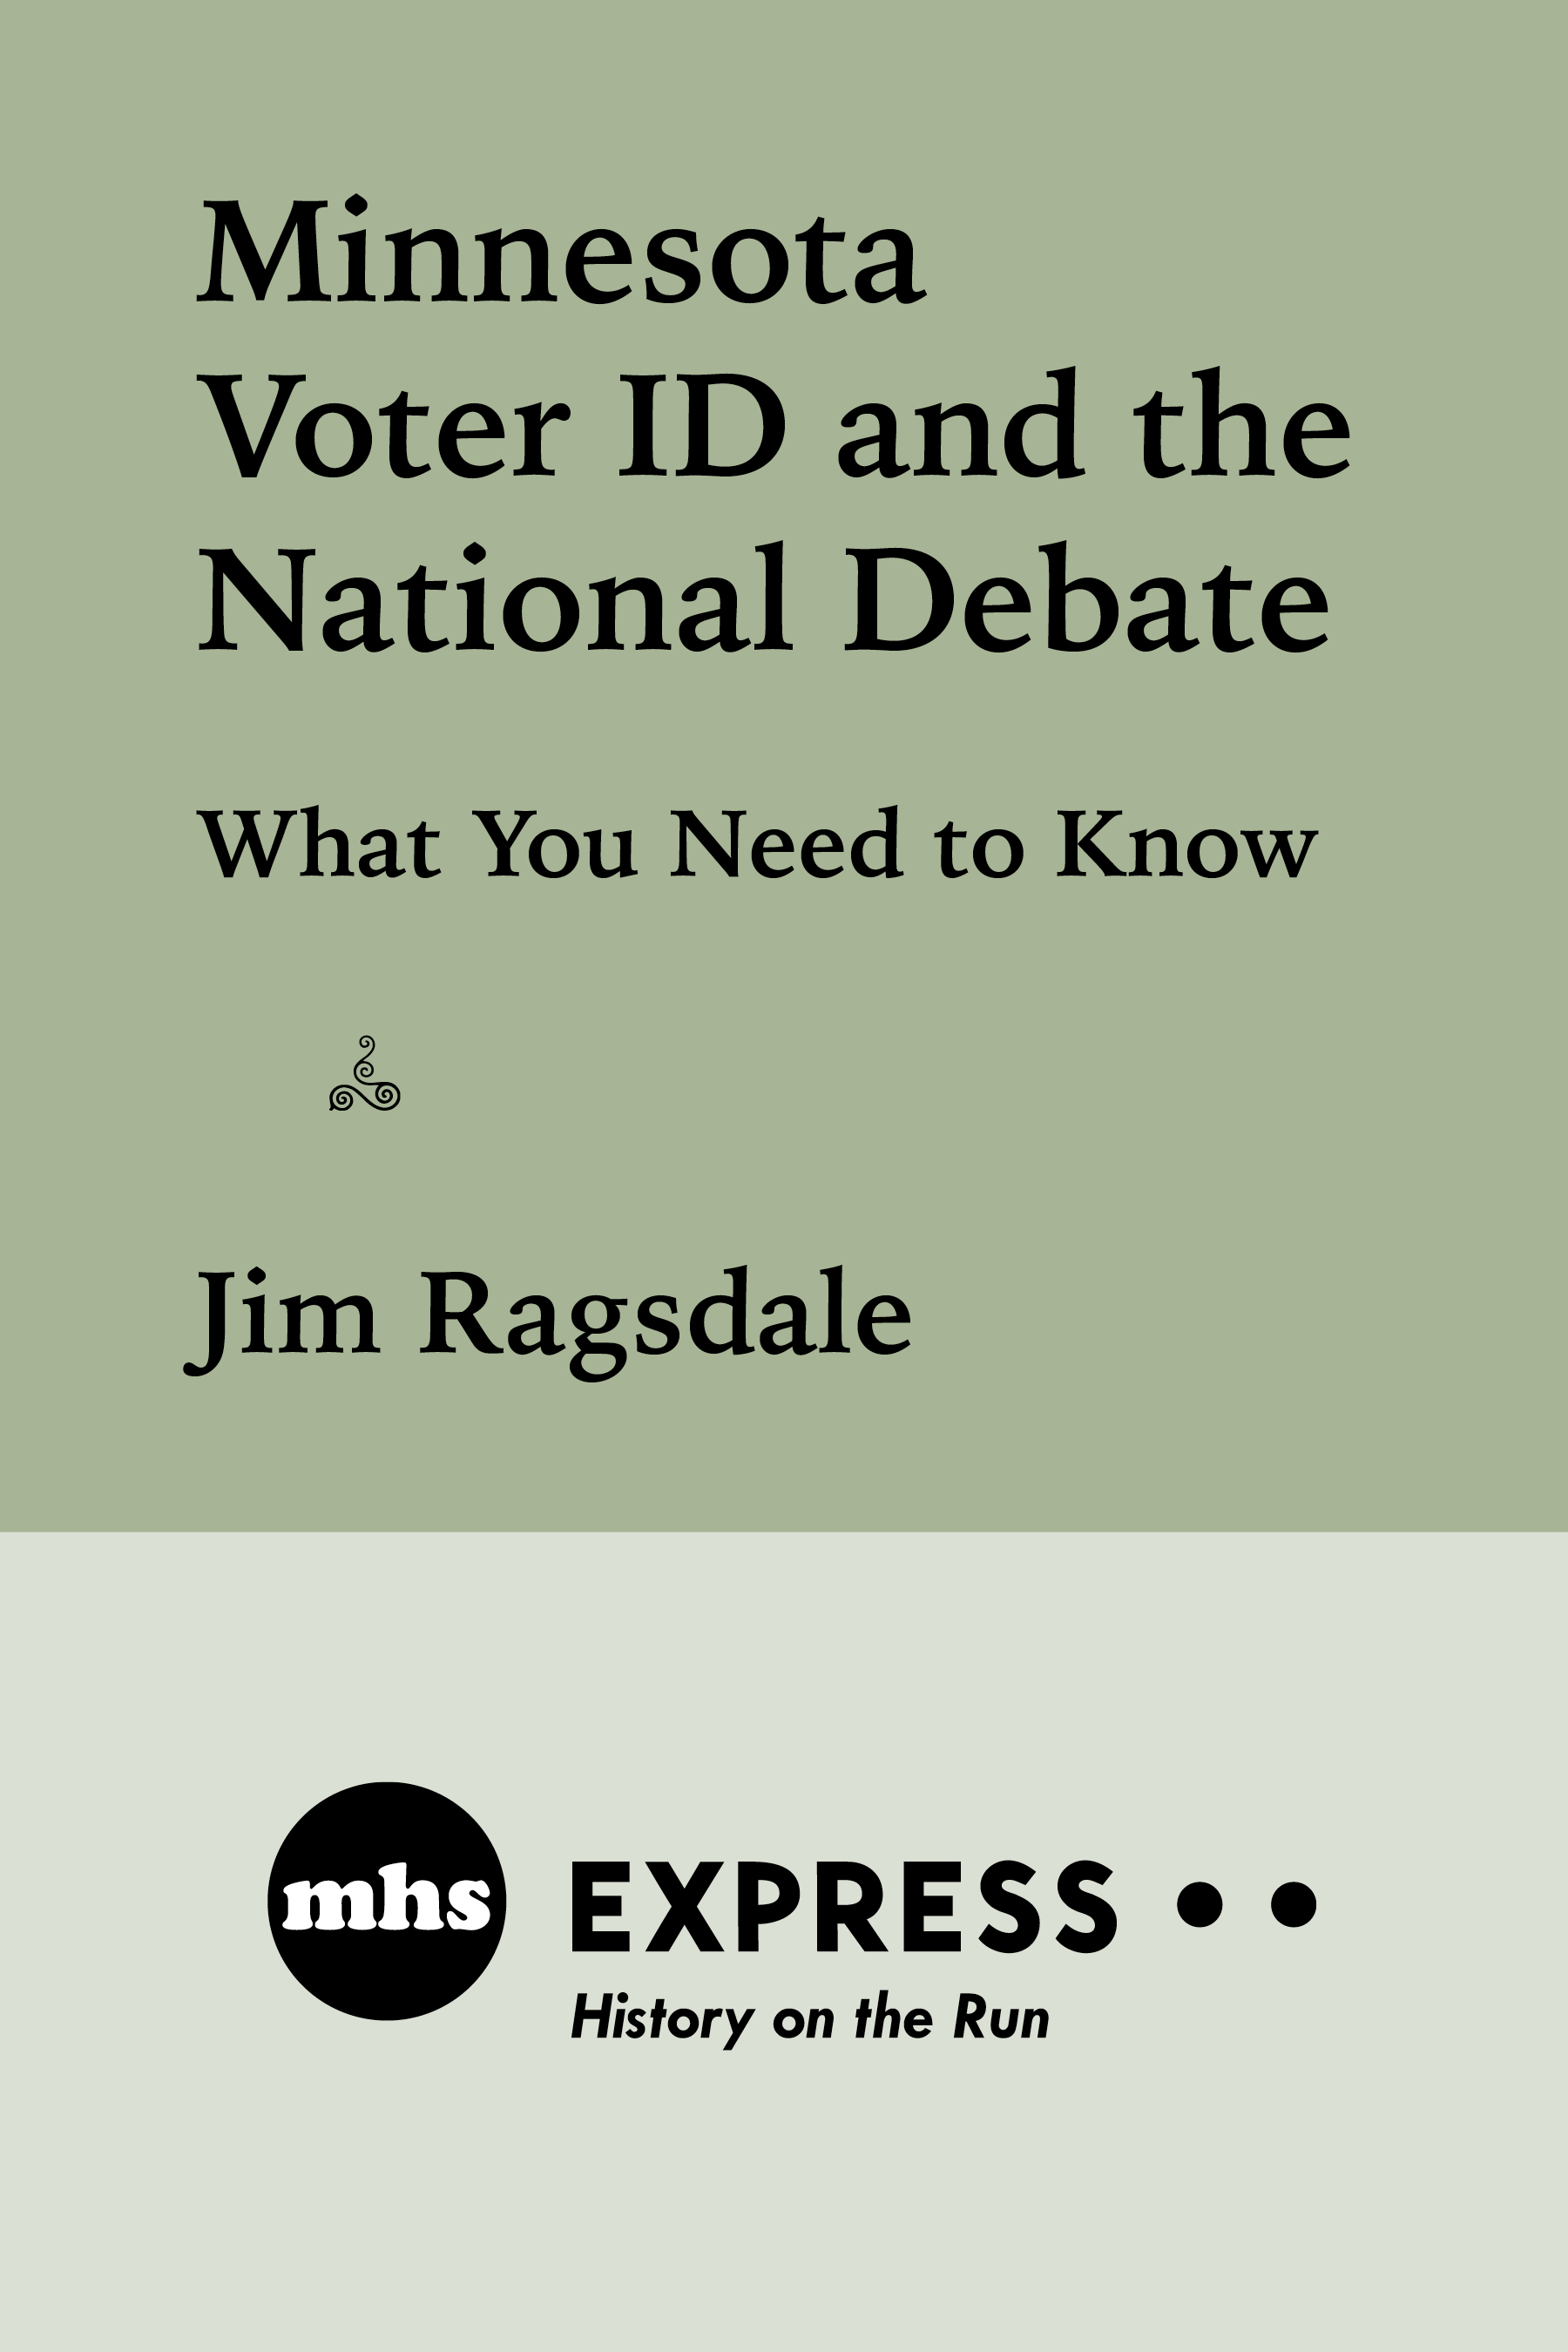 Minnesota Voter ID and the National Debate: What You Need to Know